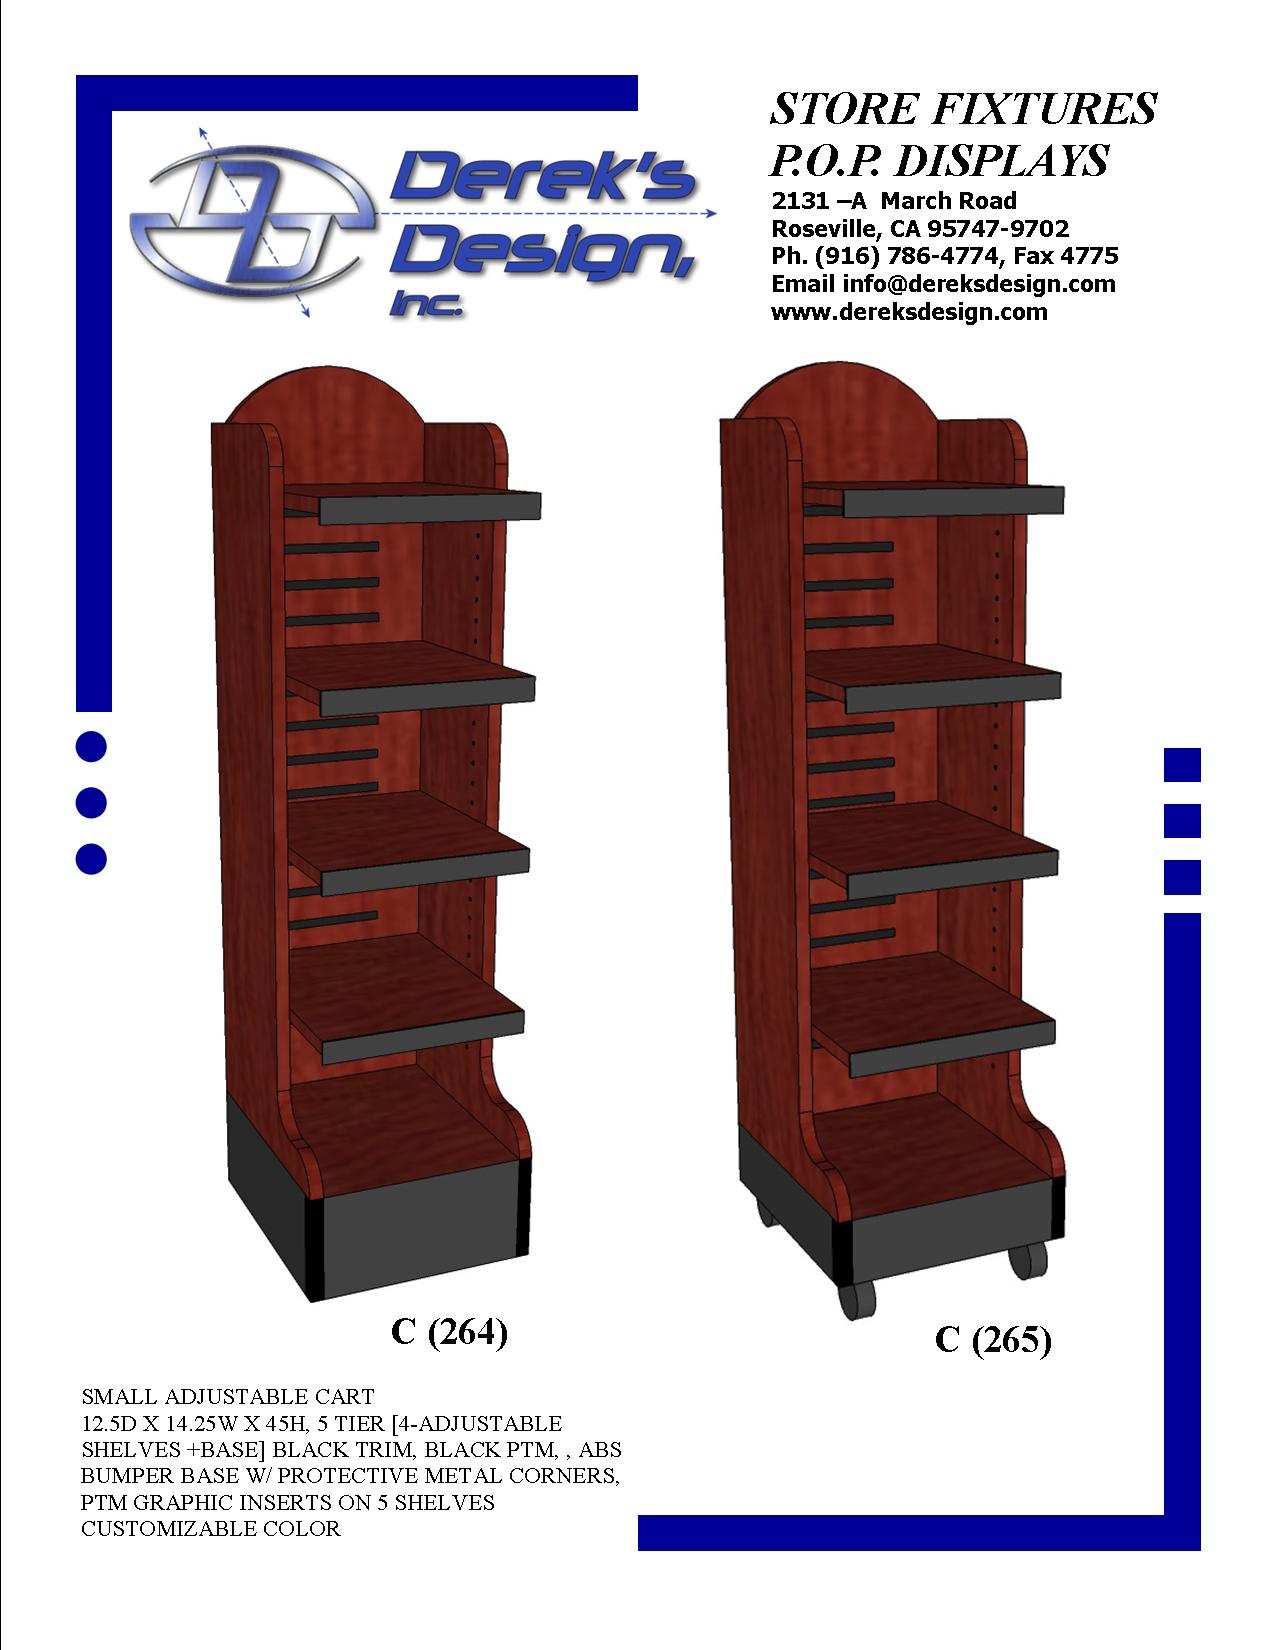 "<A HREF=""MAILTO:ORDERS@DEREKSDESIGN.COM?SUBJECT=C%20(264)&BODY=http://www.dereksdesign.com/gallery/carts-bunkers/c-264-c-265/"">CLICK HERE FOR INQUIRY </A>"